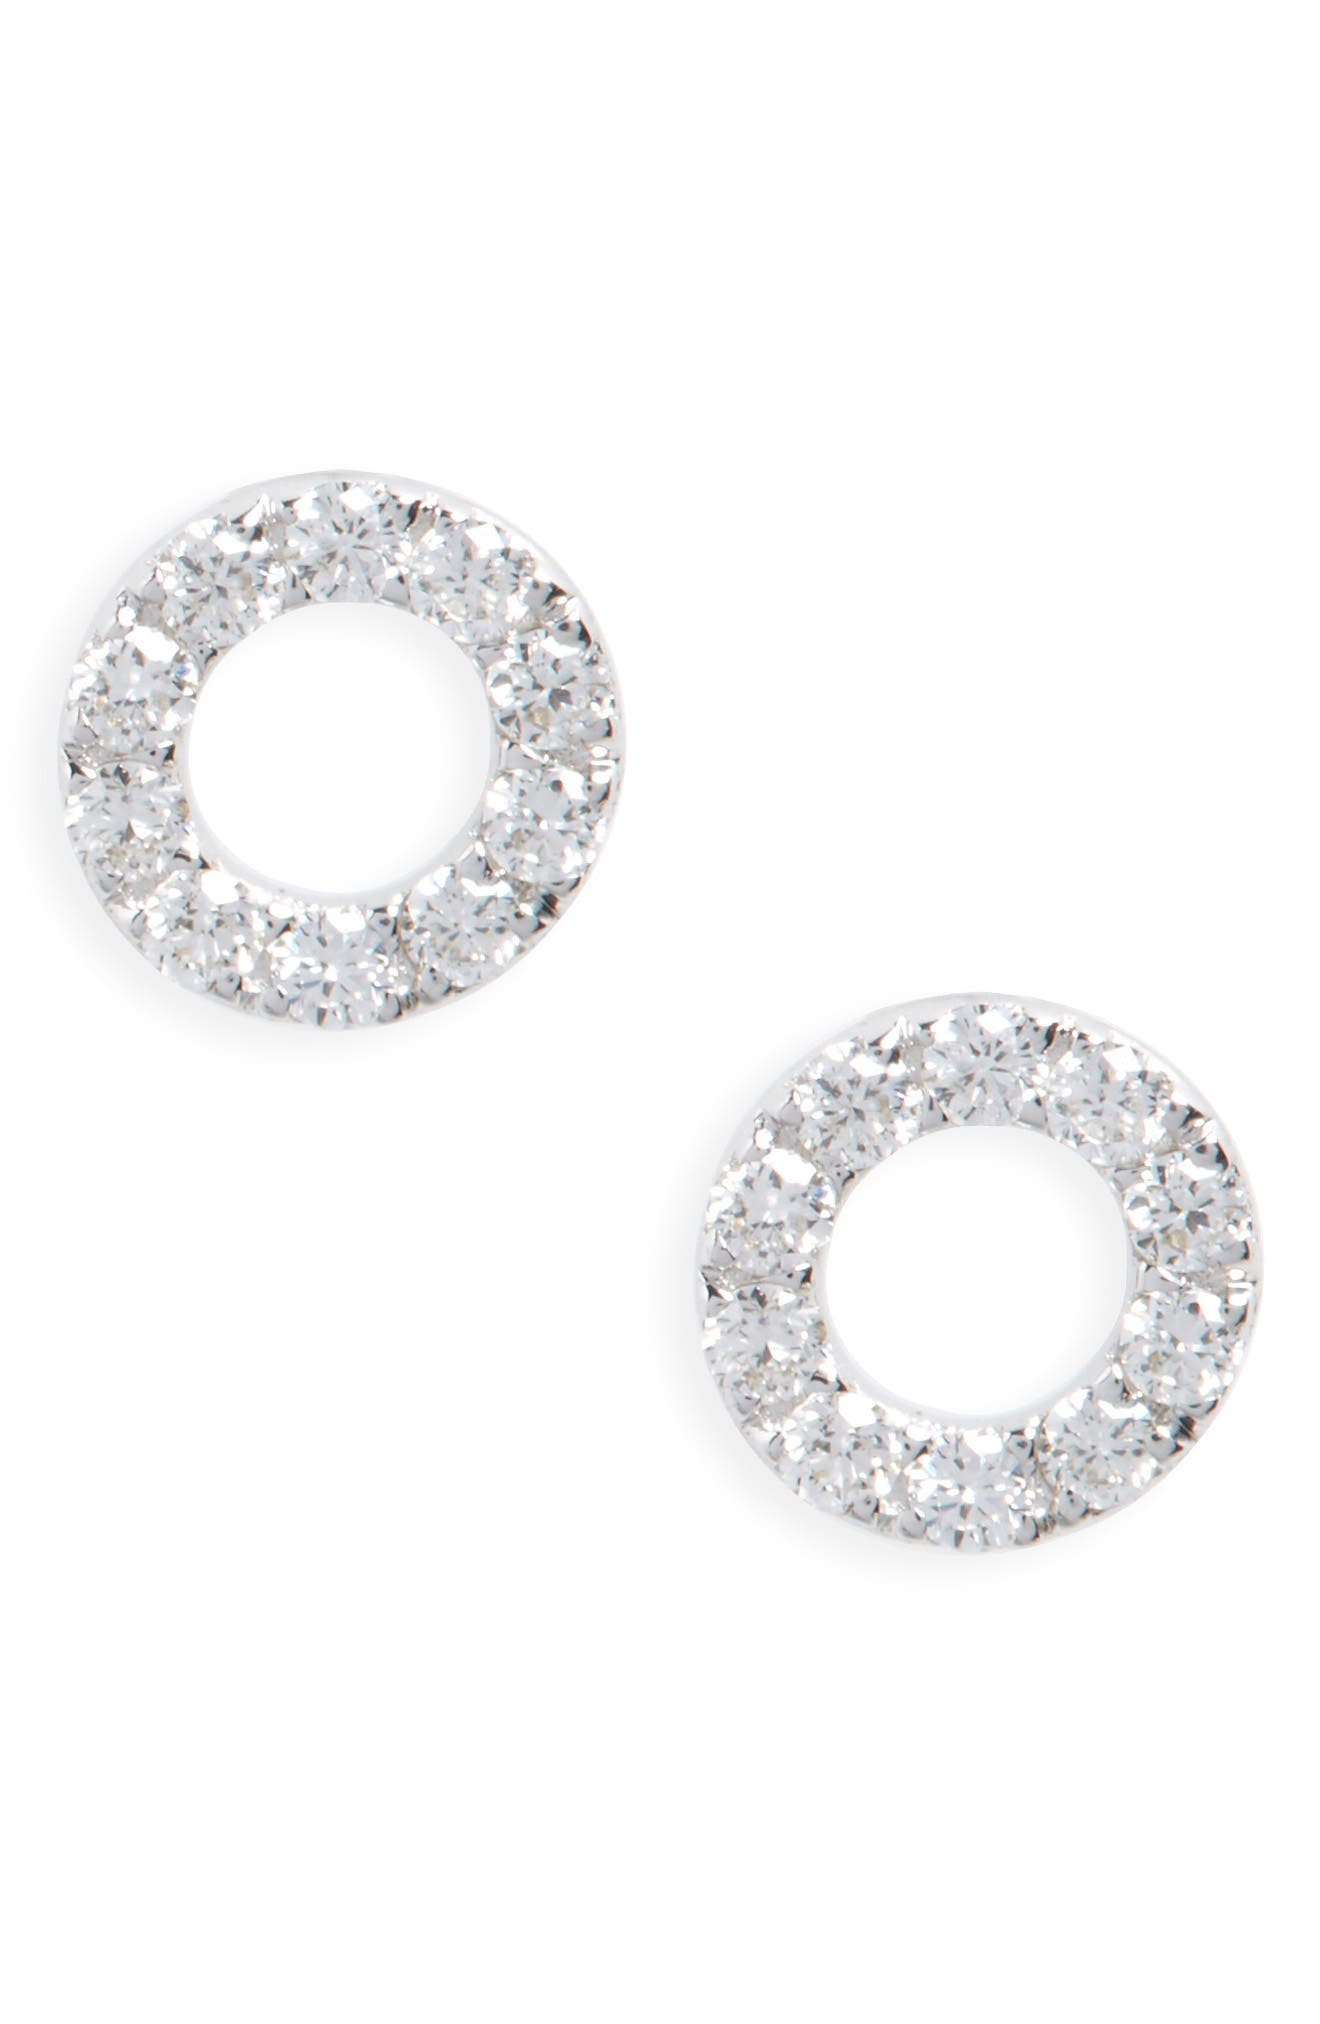 Simple Obsessions Geo Circle Diamond Stud Earrings,                         Main,                         color, WHITE GOLD